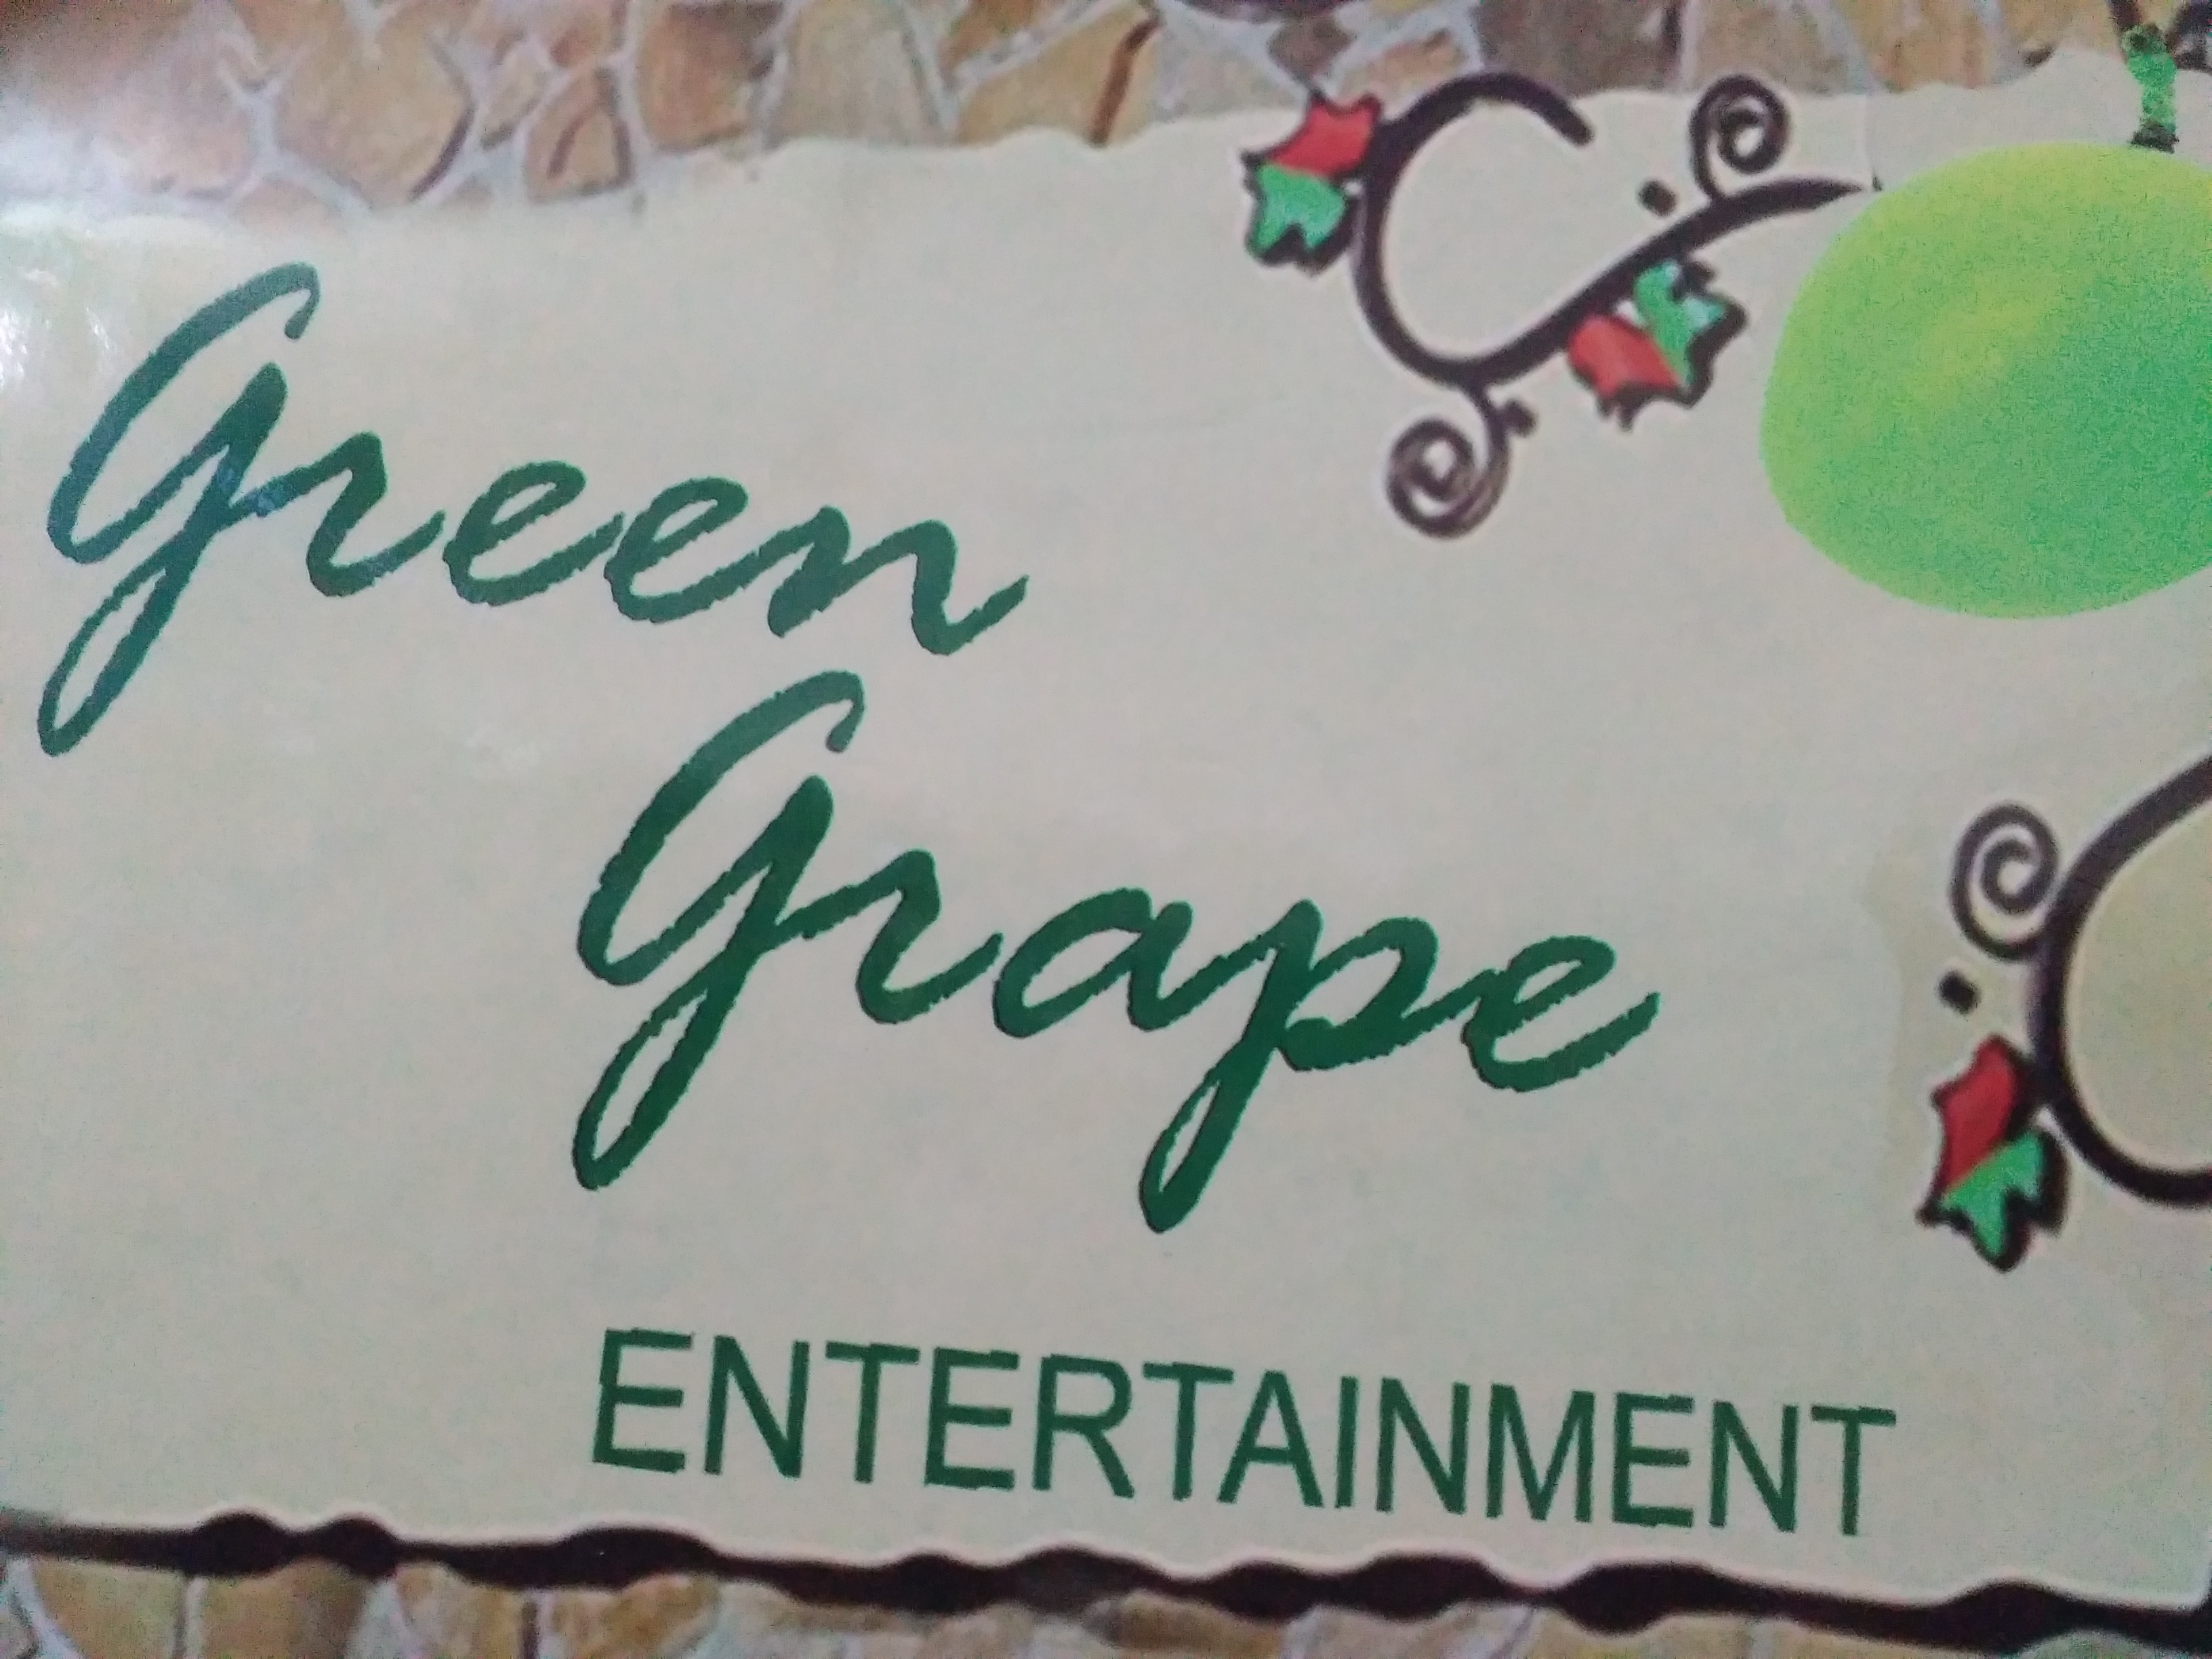 Green Grape Entertainment